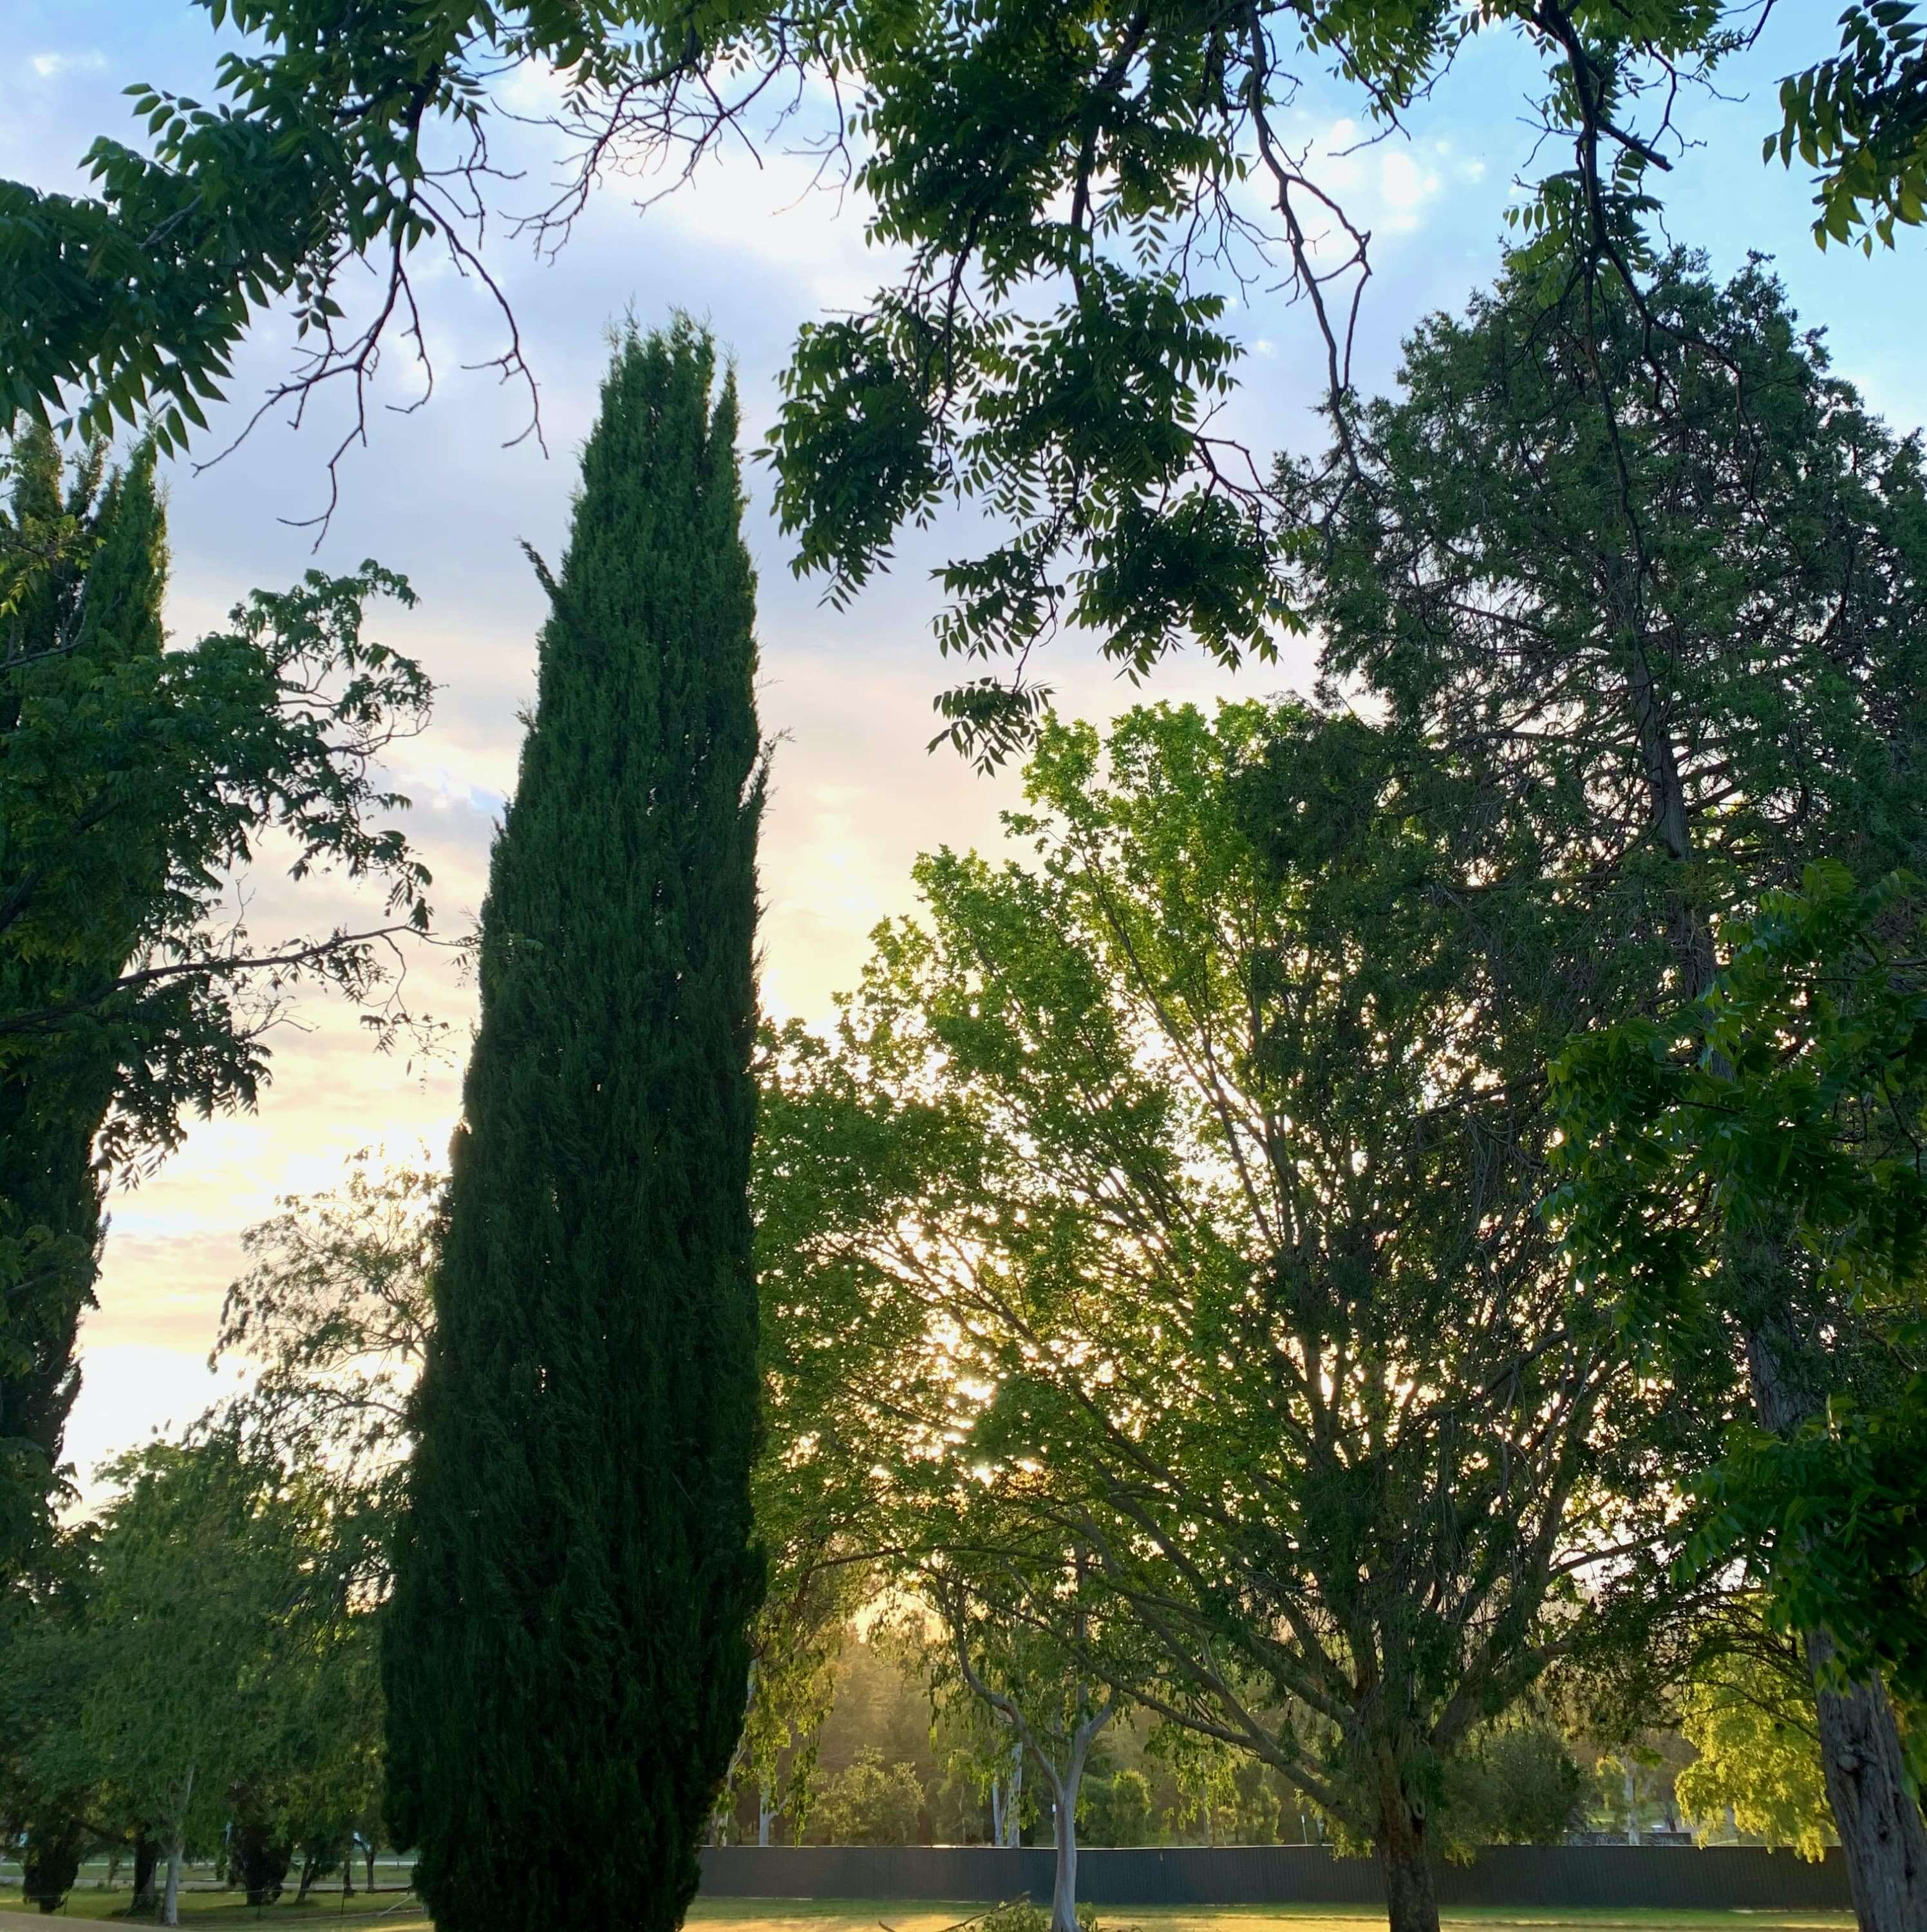 Morning sunshine through the trees, Canberra